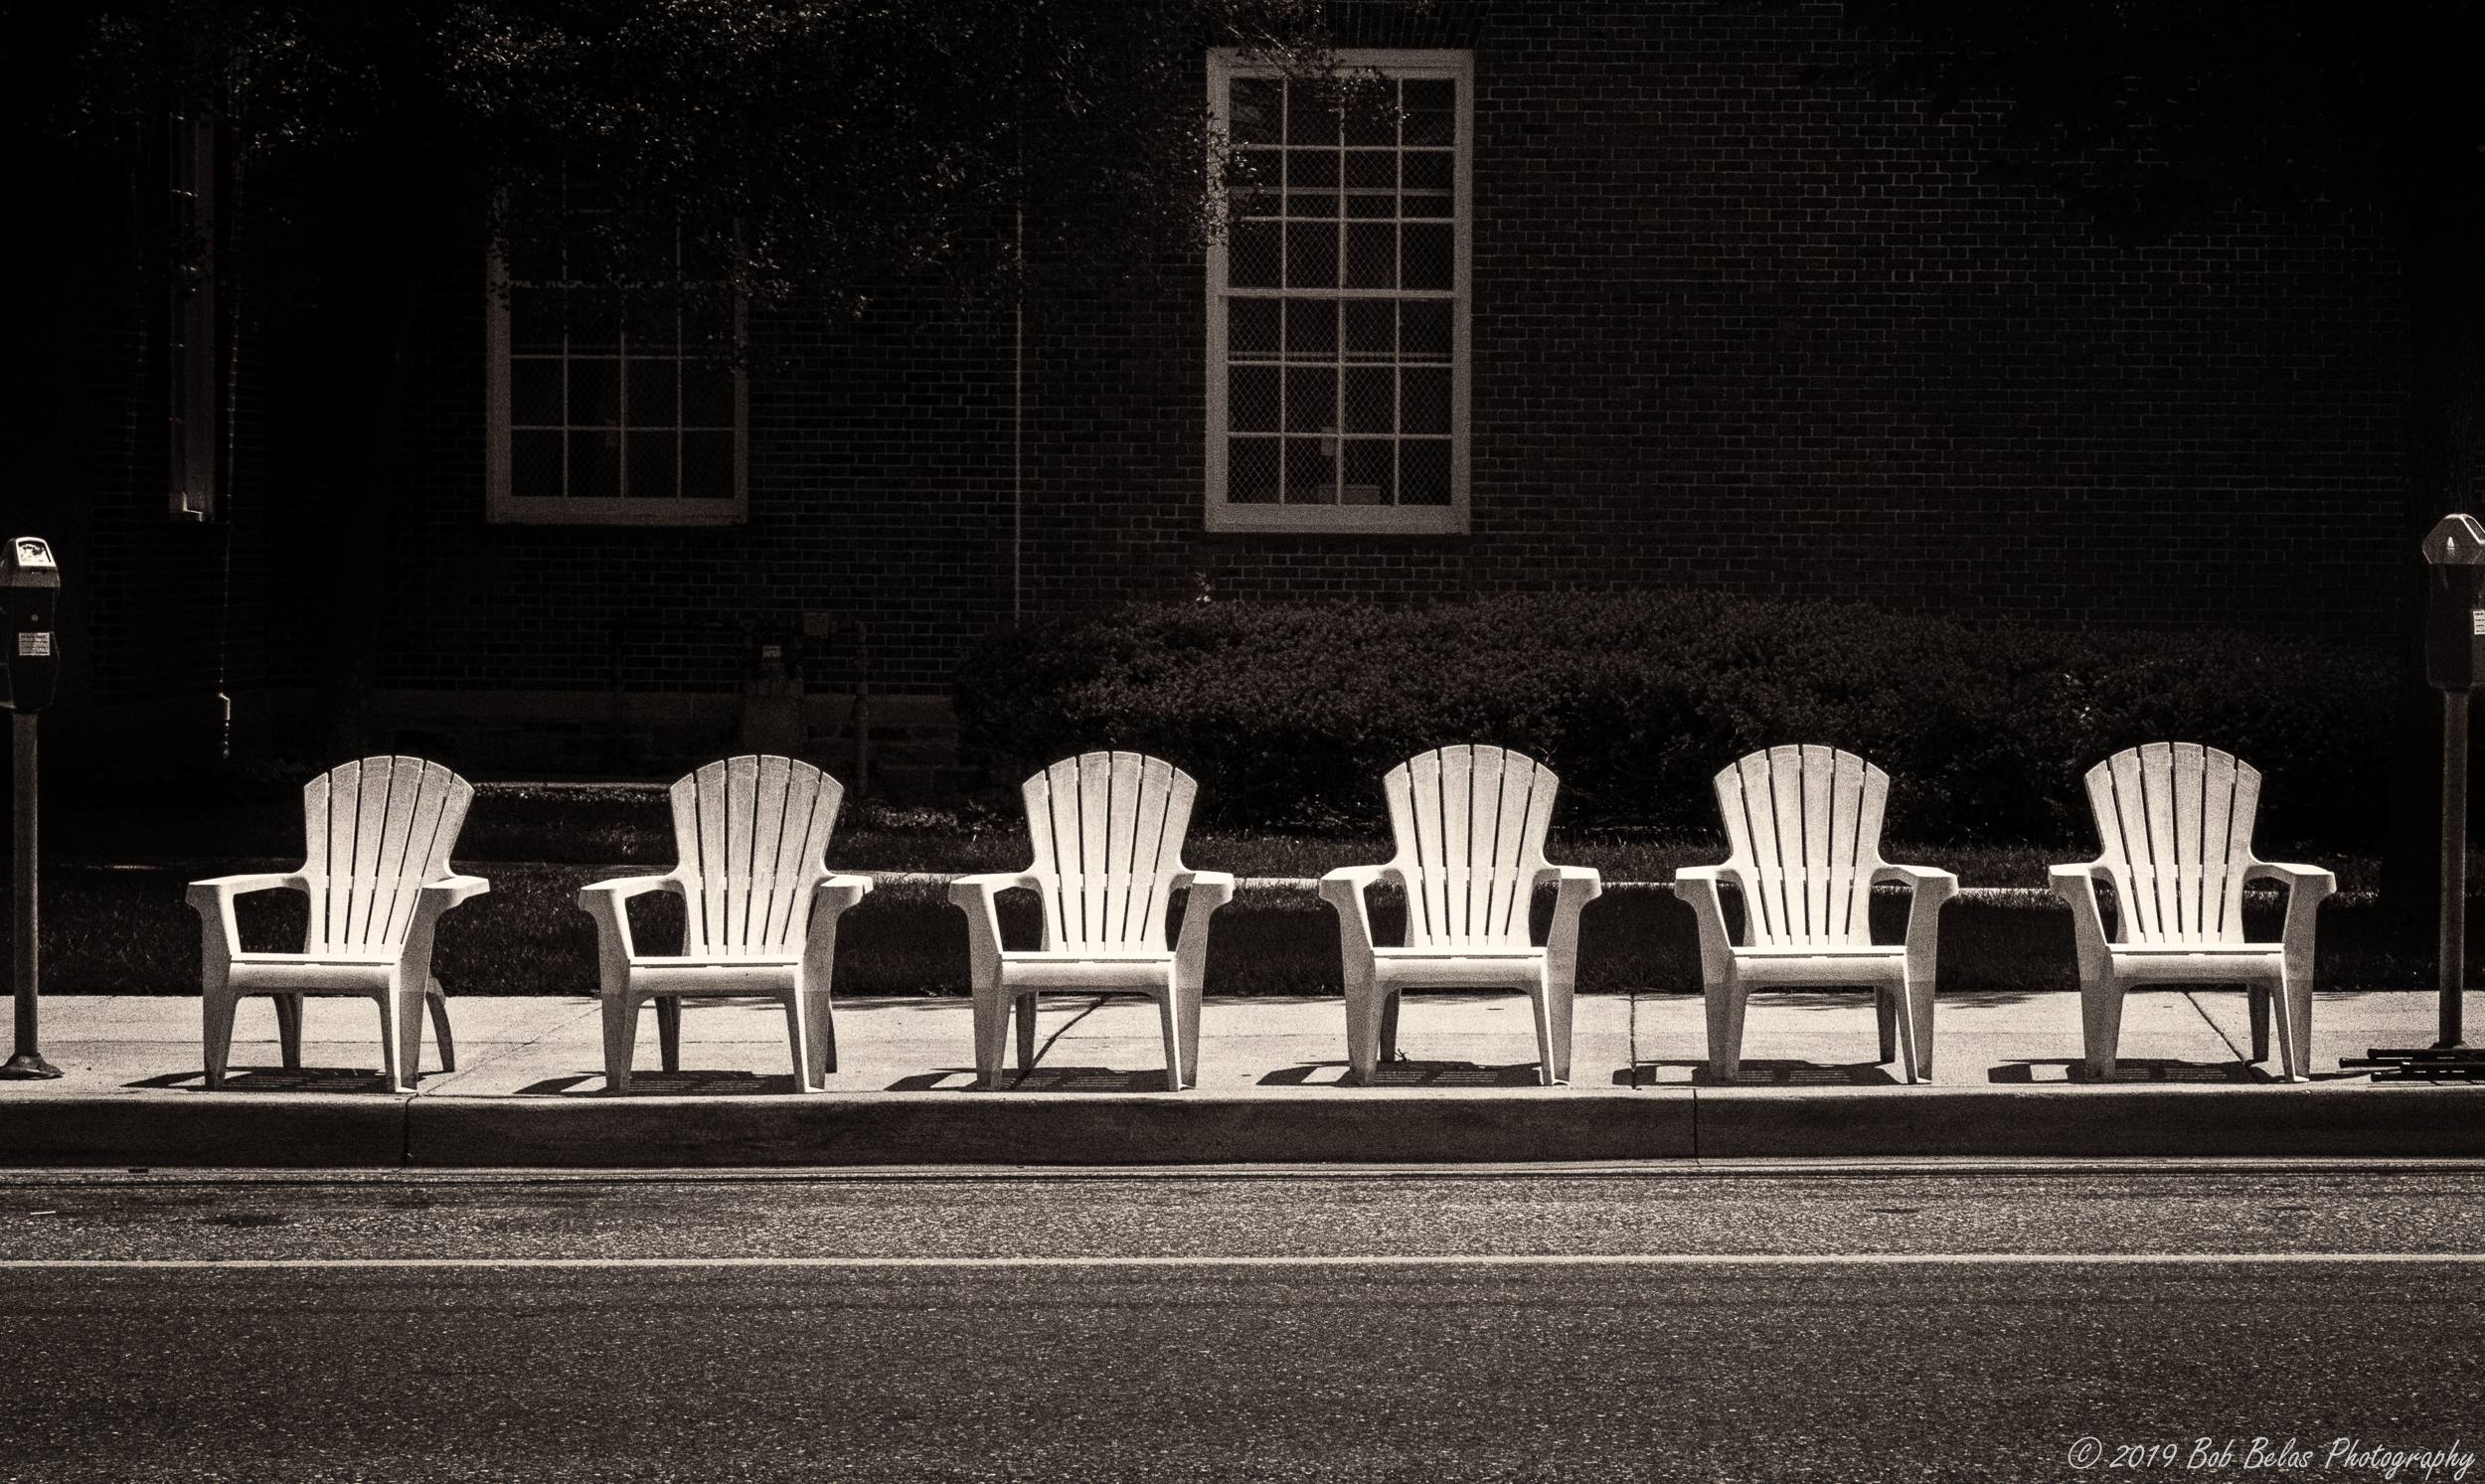 Six Chairs Waiting, duotone